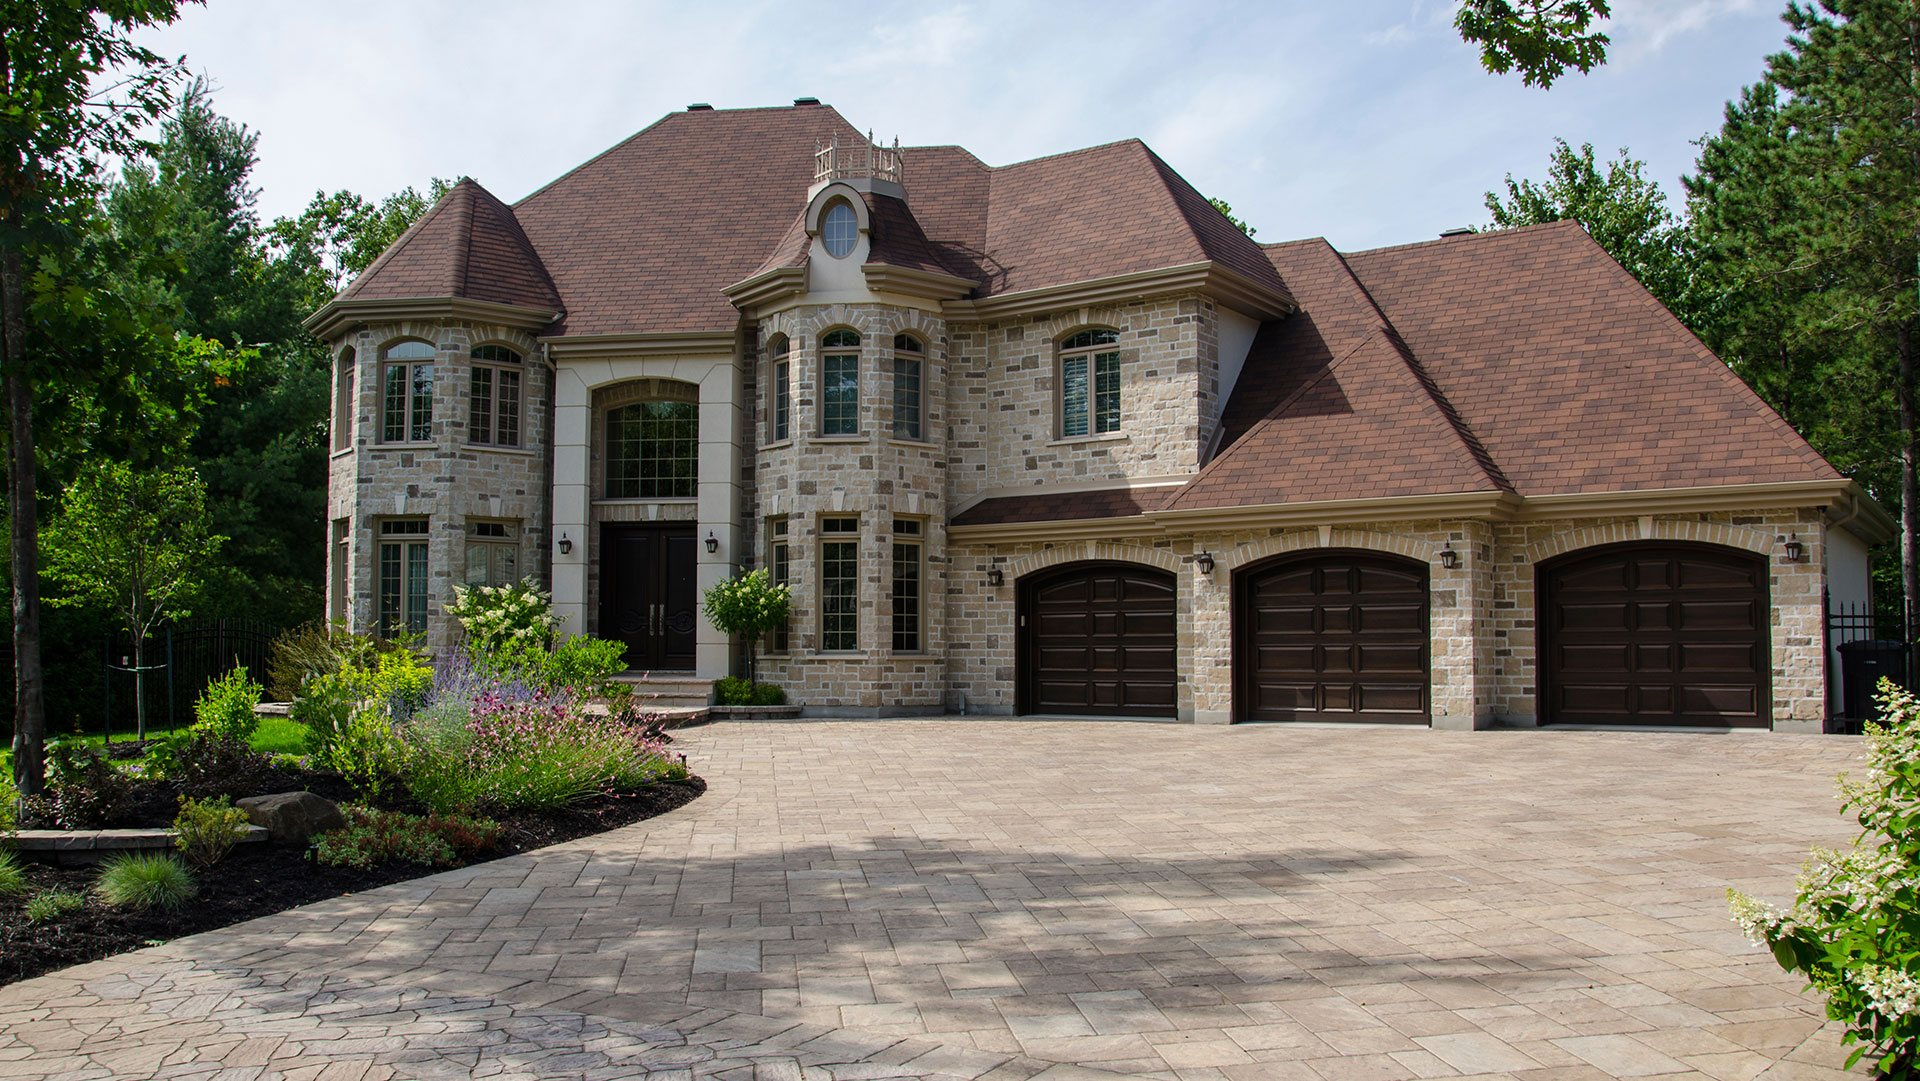 Eagle Homes, Inc. Home Builder, Custom Home Builder and Home Remodeling Contractor